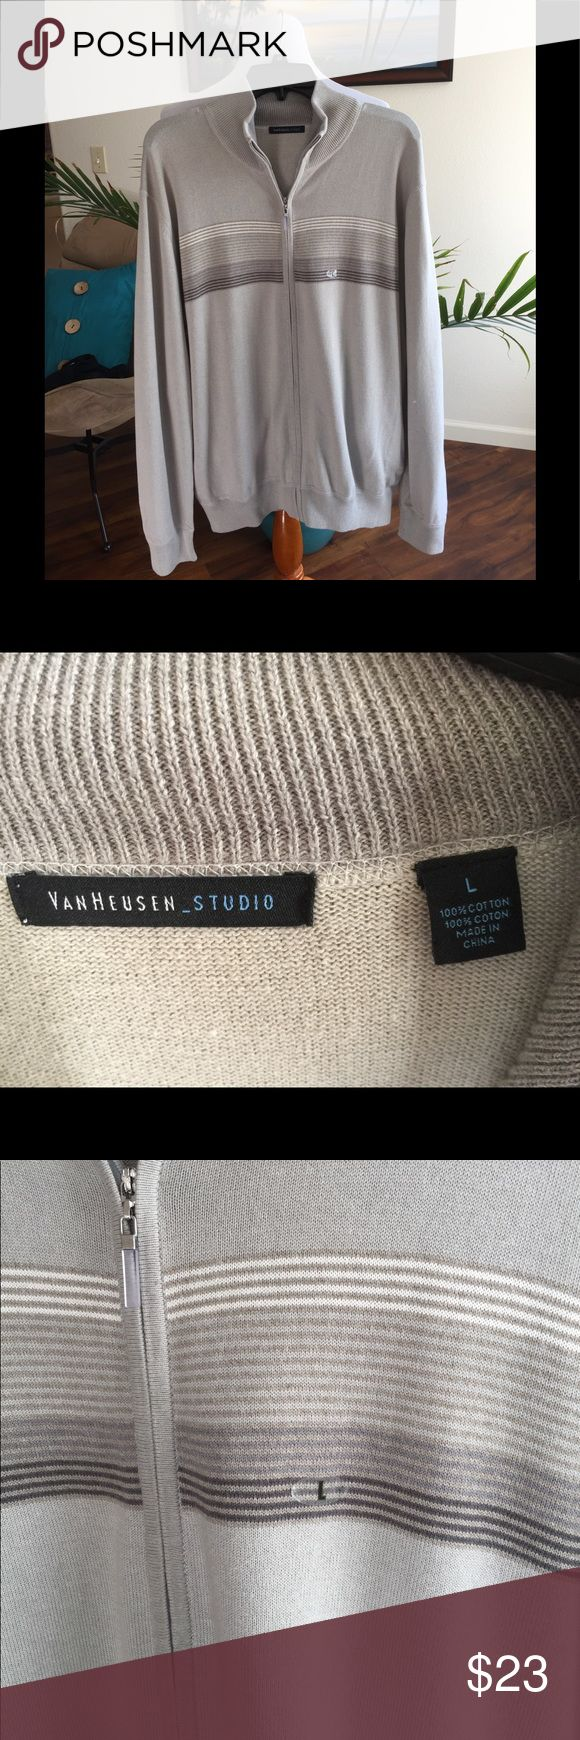 VAN HEUSEN STUDIO SWEATER, MENS,  L LIGHT GRAY,  MENS, ZIP UP CARDIGAN SWEATER,  SIZE L,   MY FATHER NEVER WORE IT, STILL HAS SIZE STICKER ON IT, HE GOT ILL AND LOST TO MUCH WEIGHT.  VERY HANDSOME. Van Heusen Sweaters Cardigan